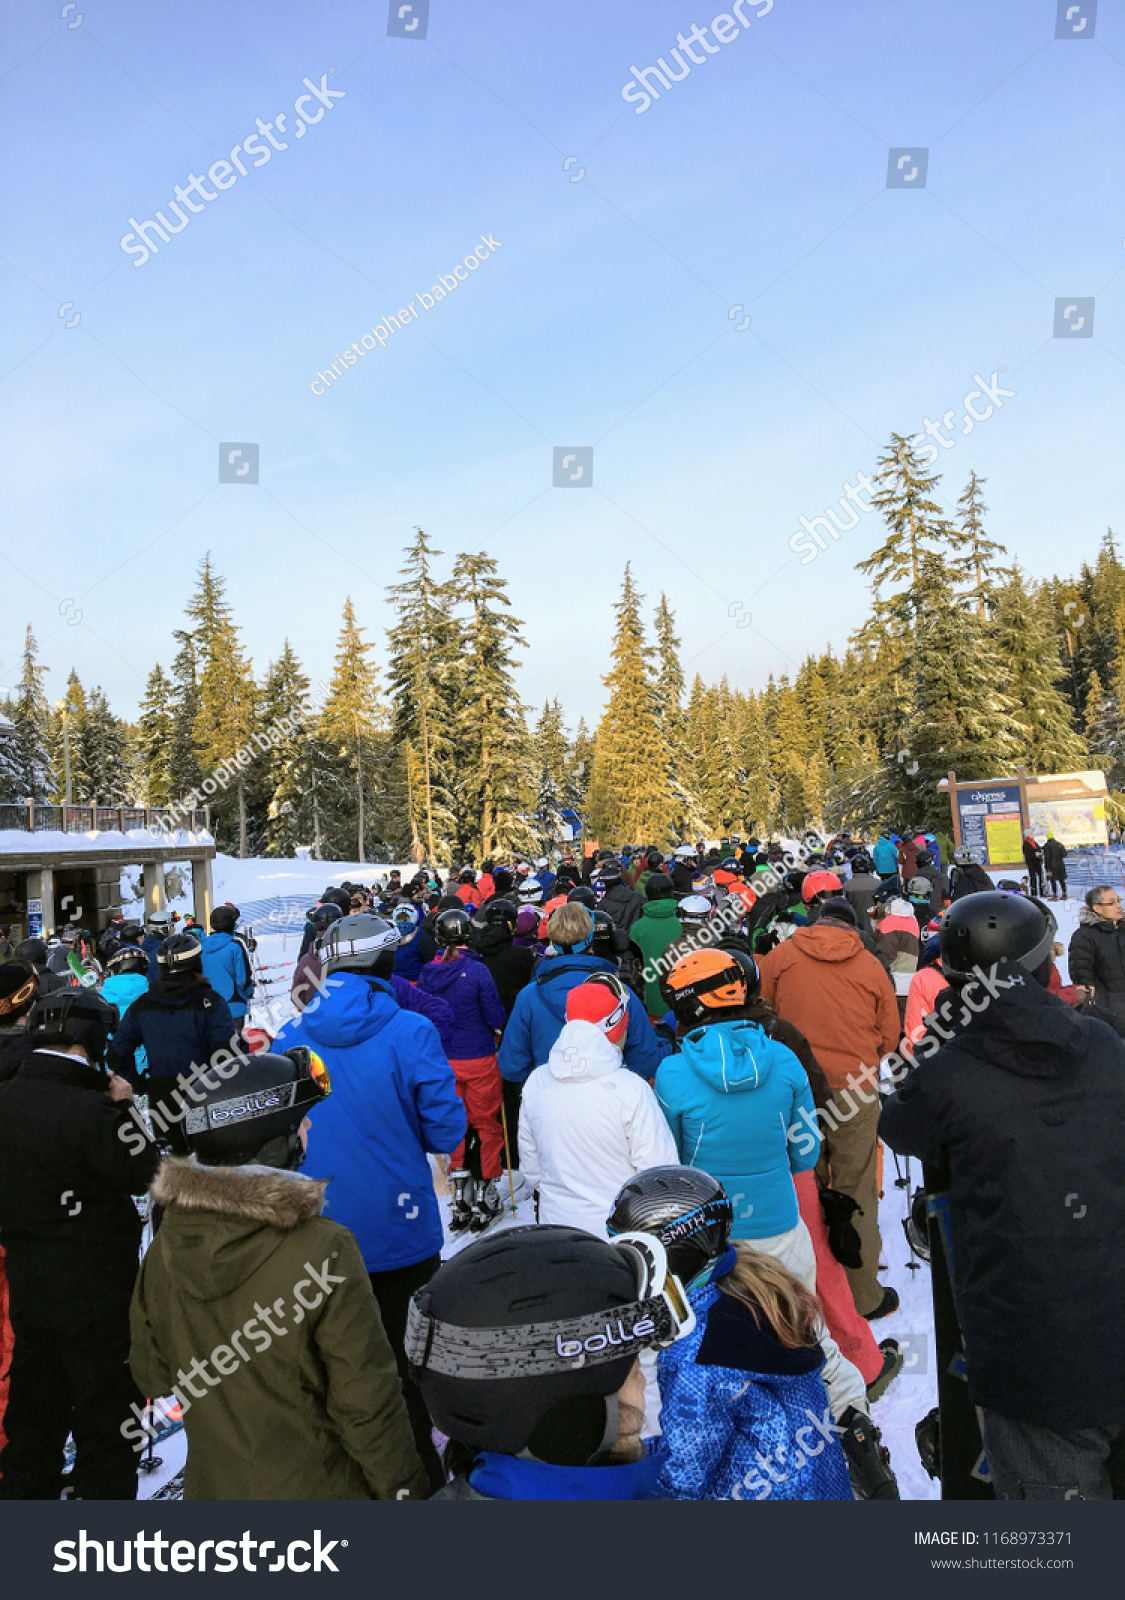 stock-photo-west-vancouver-cypress-mountain-canada-january-st-a-long-lineup-of-anxious-skiers-and-1168973371.jpg